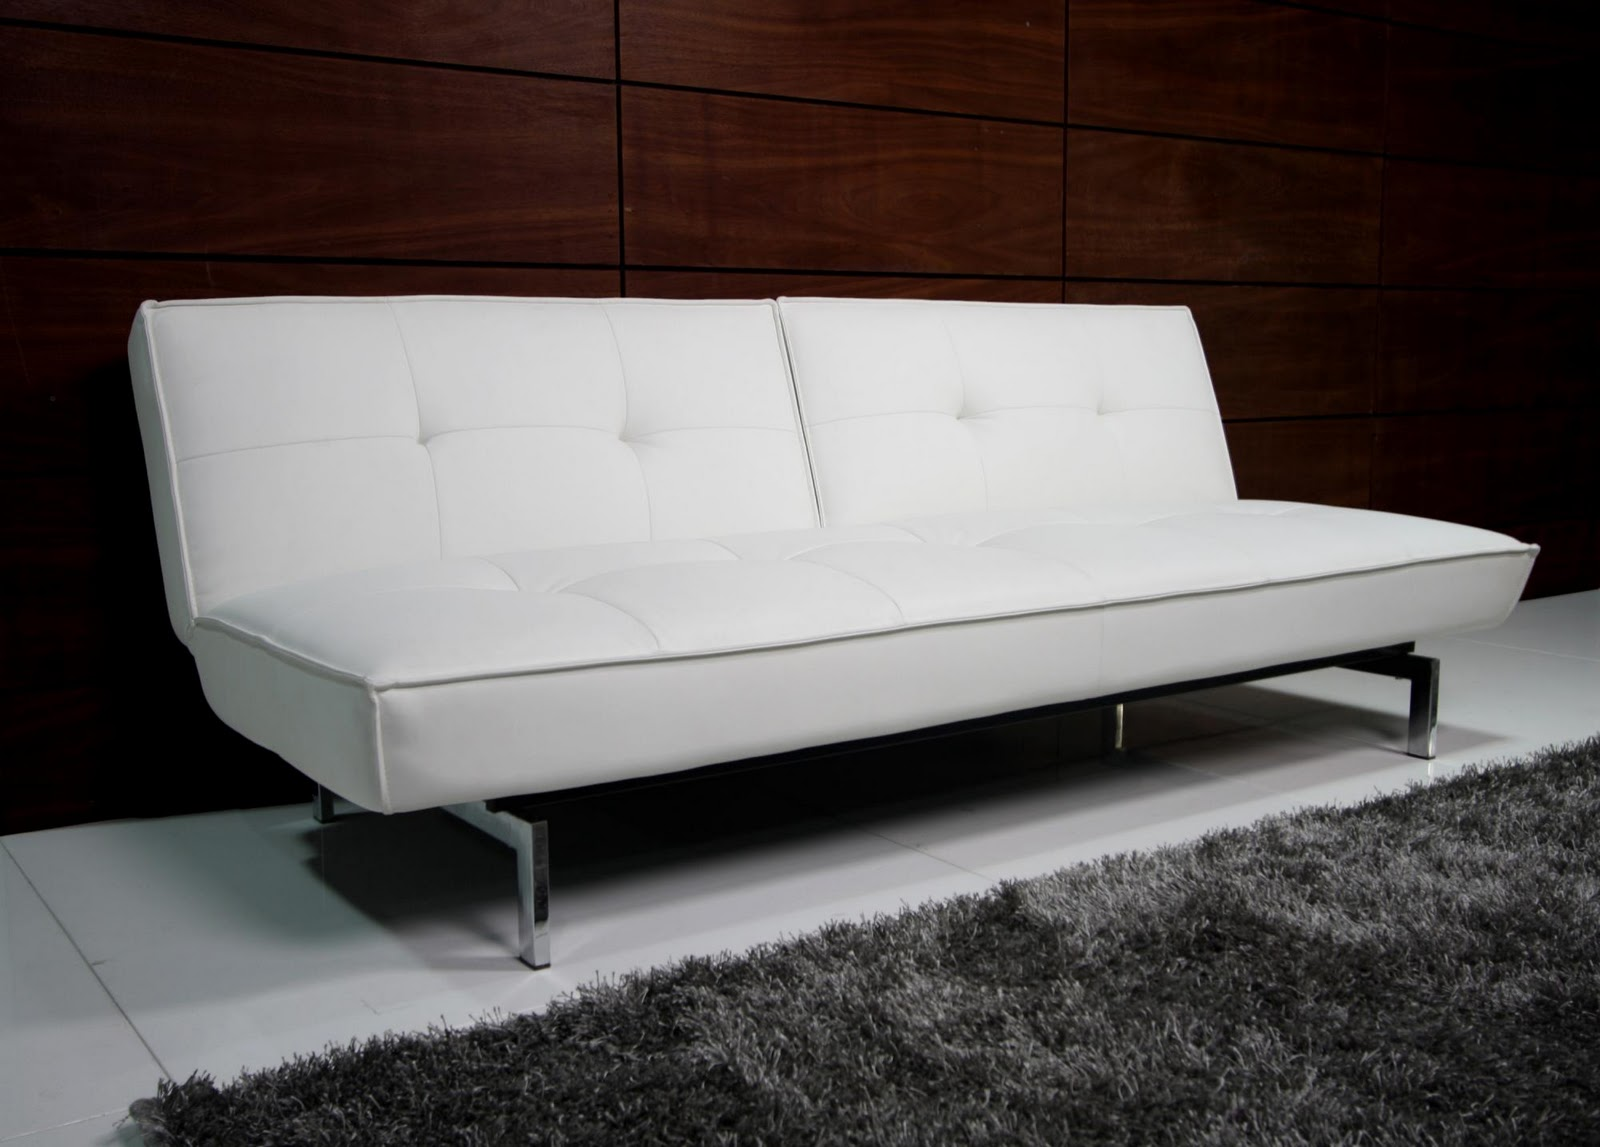 Belle Faux Leather Convertible Futon Sofa Bed White Belle